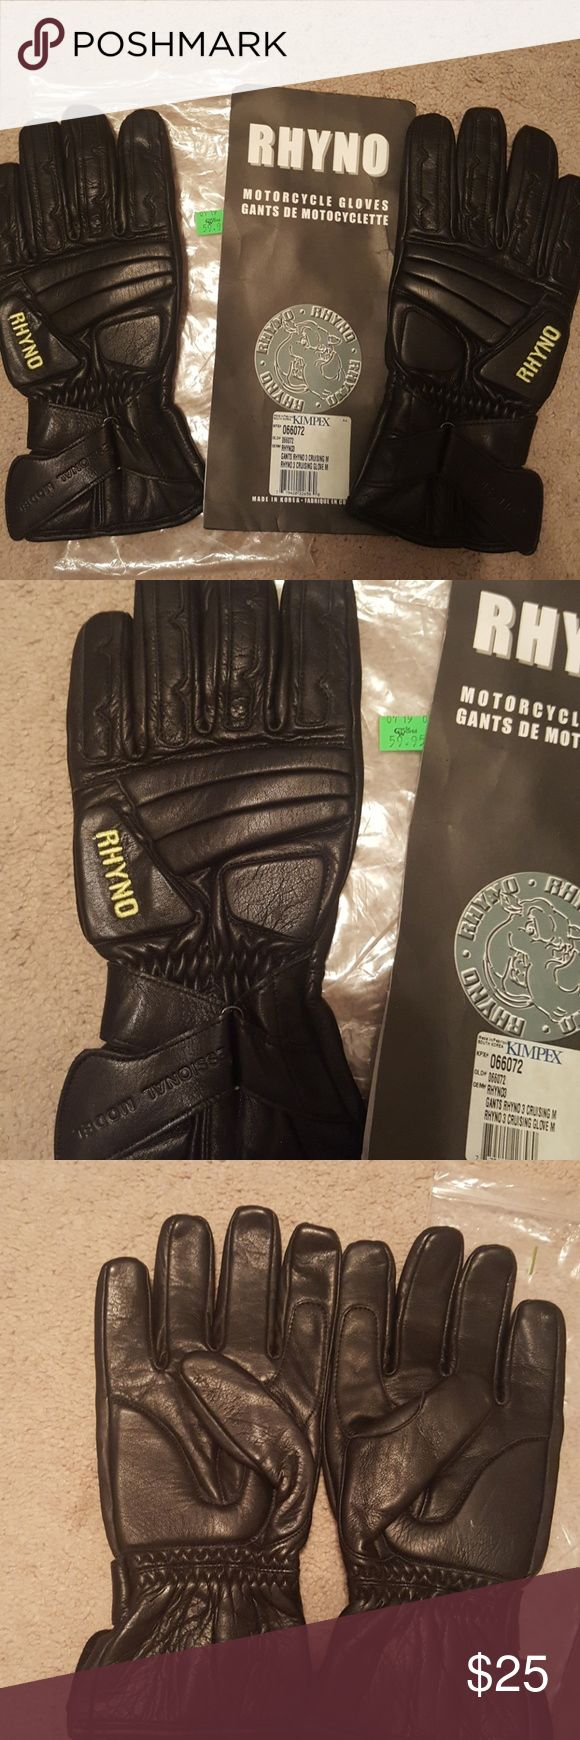 NWT Rhyno motorcycle riding gloves Brand new in Packaging $60 Rhyno cruising motorcycle gloves. rhyno Accessories Gloves